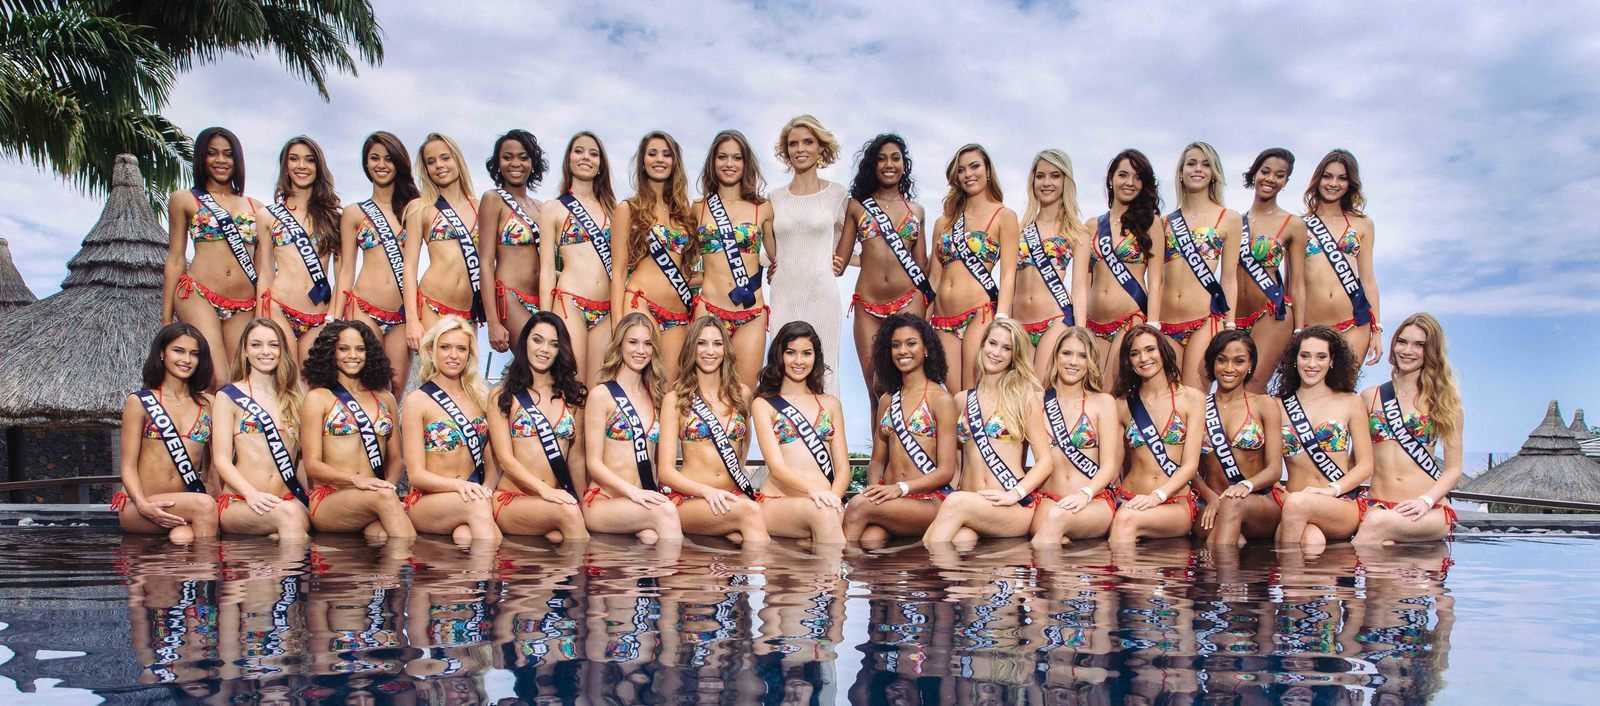 Les 30 candidates de Miss France 2018 iront cet automne à Los Angeles